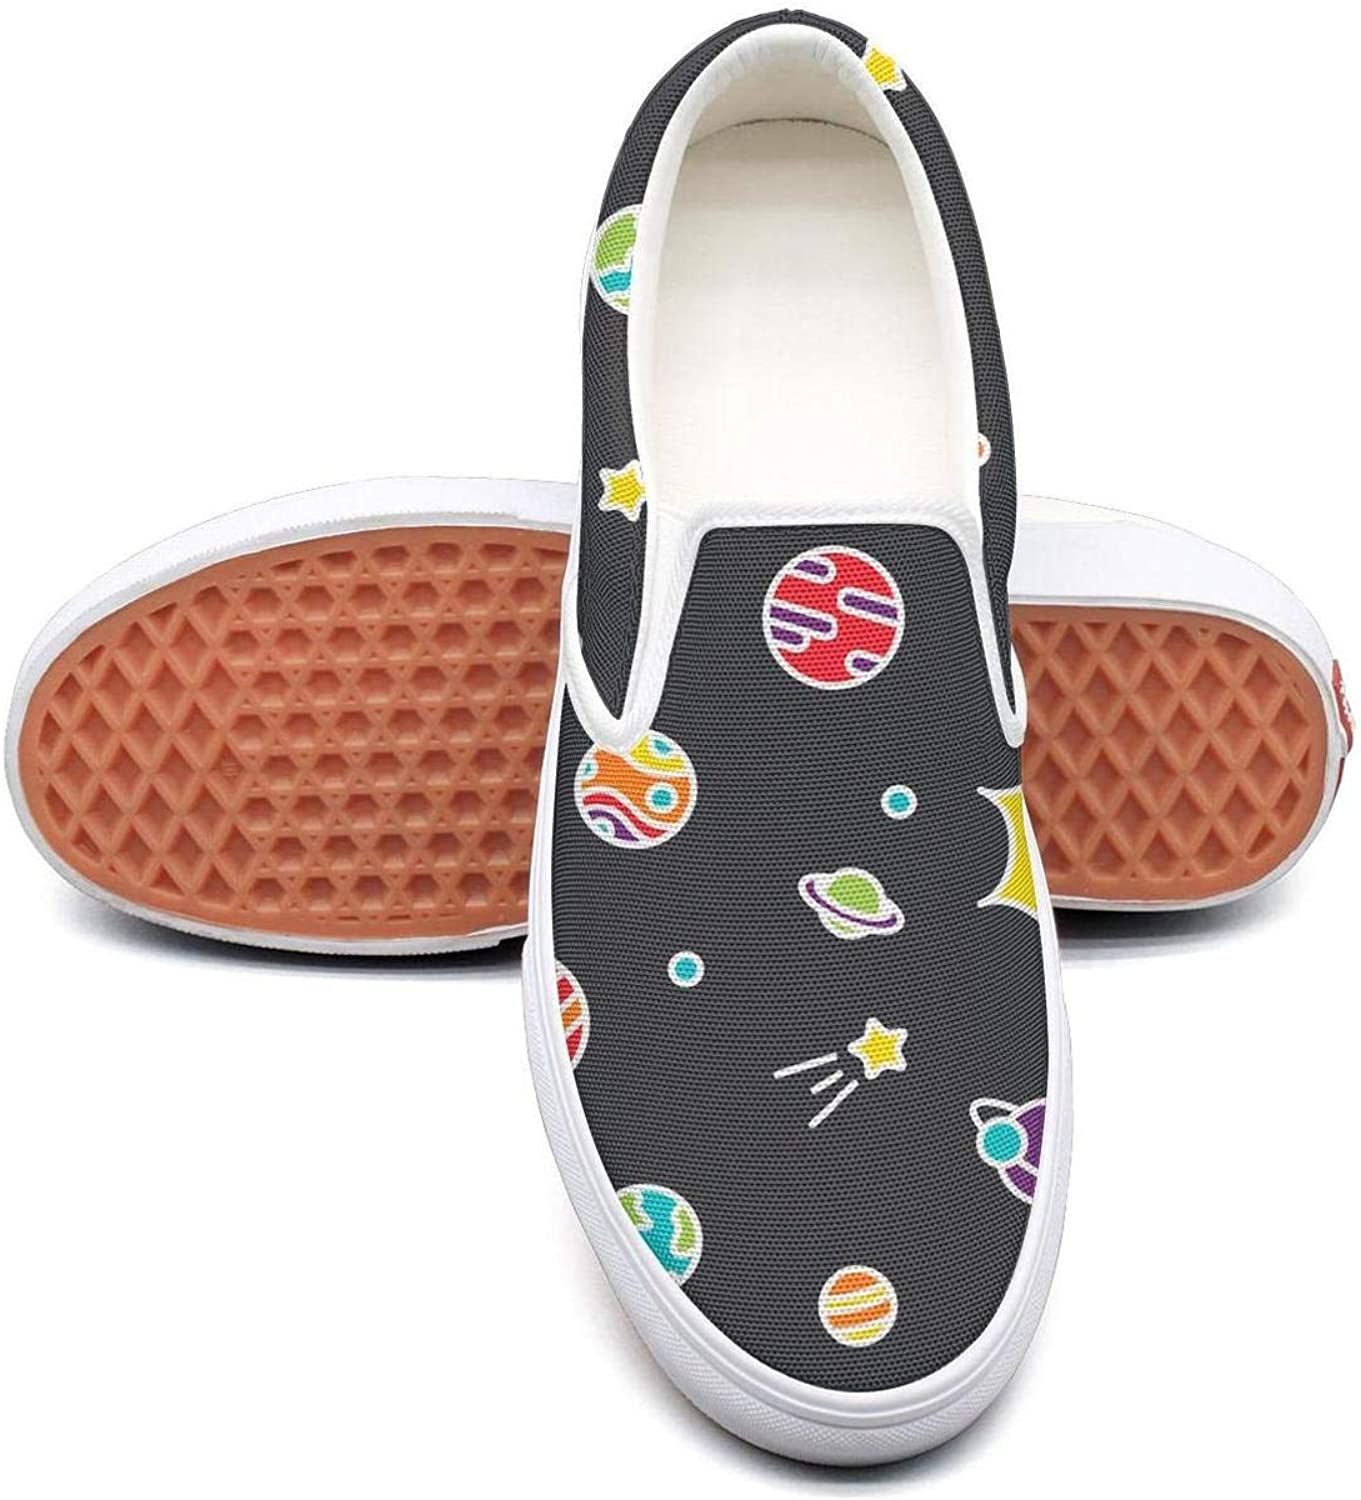 Lalige Universe colorful with Planets Women Stylish Canvas Slip-ONS Travel shoes